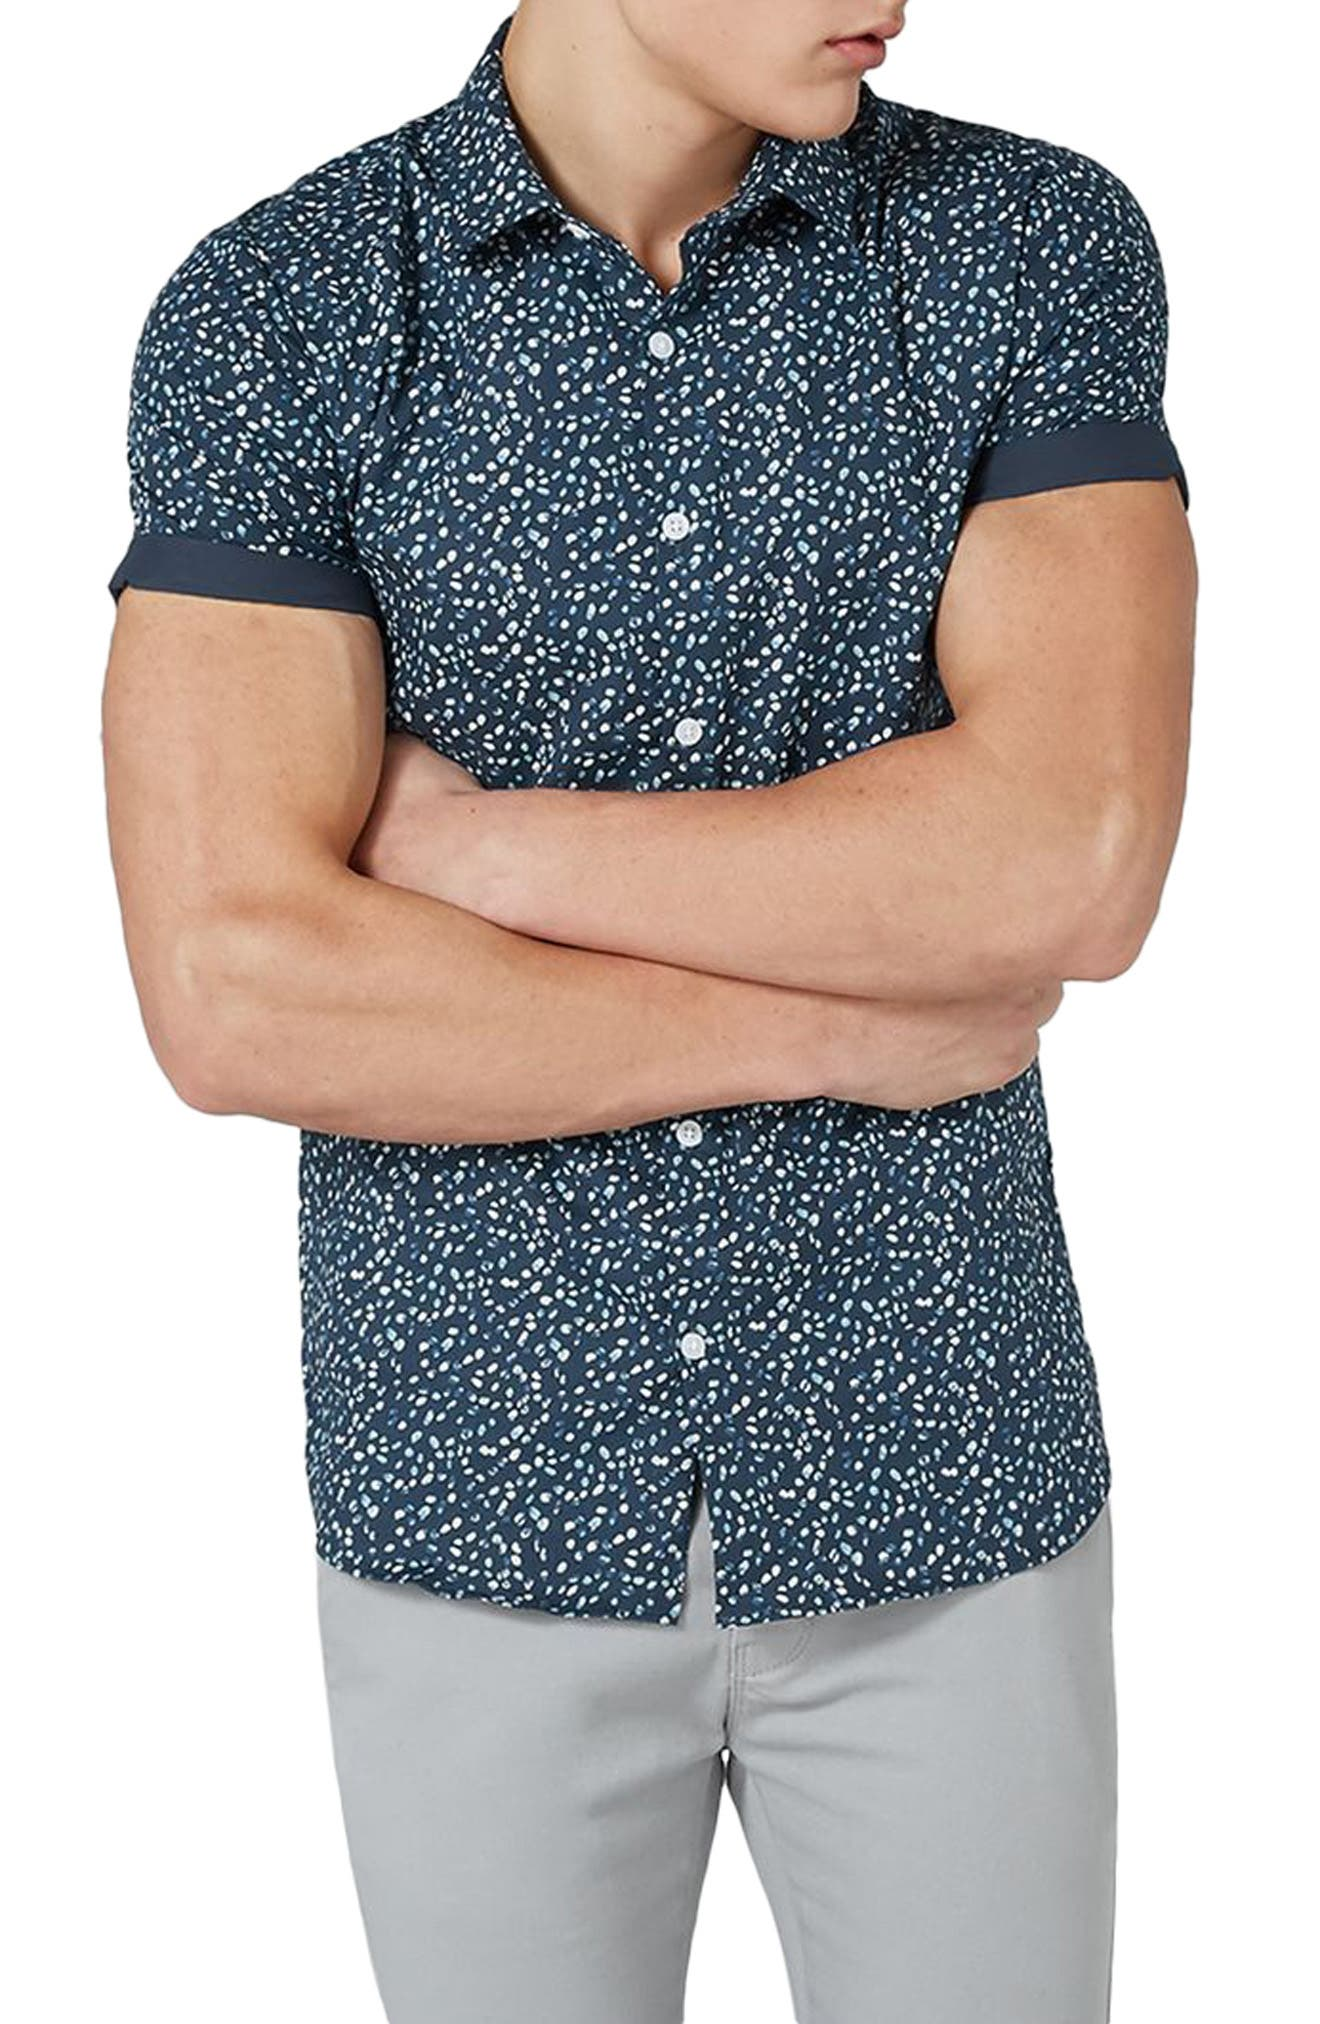 Muscle Fit Marble Print Shirt,                         Main,                         color, 401